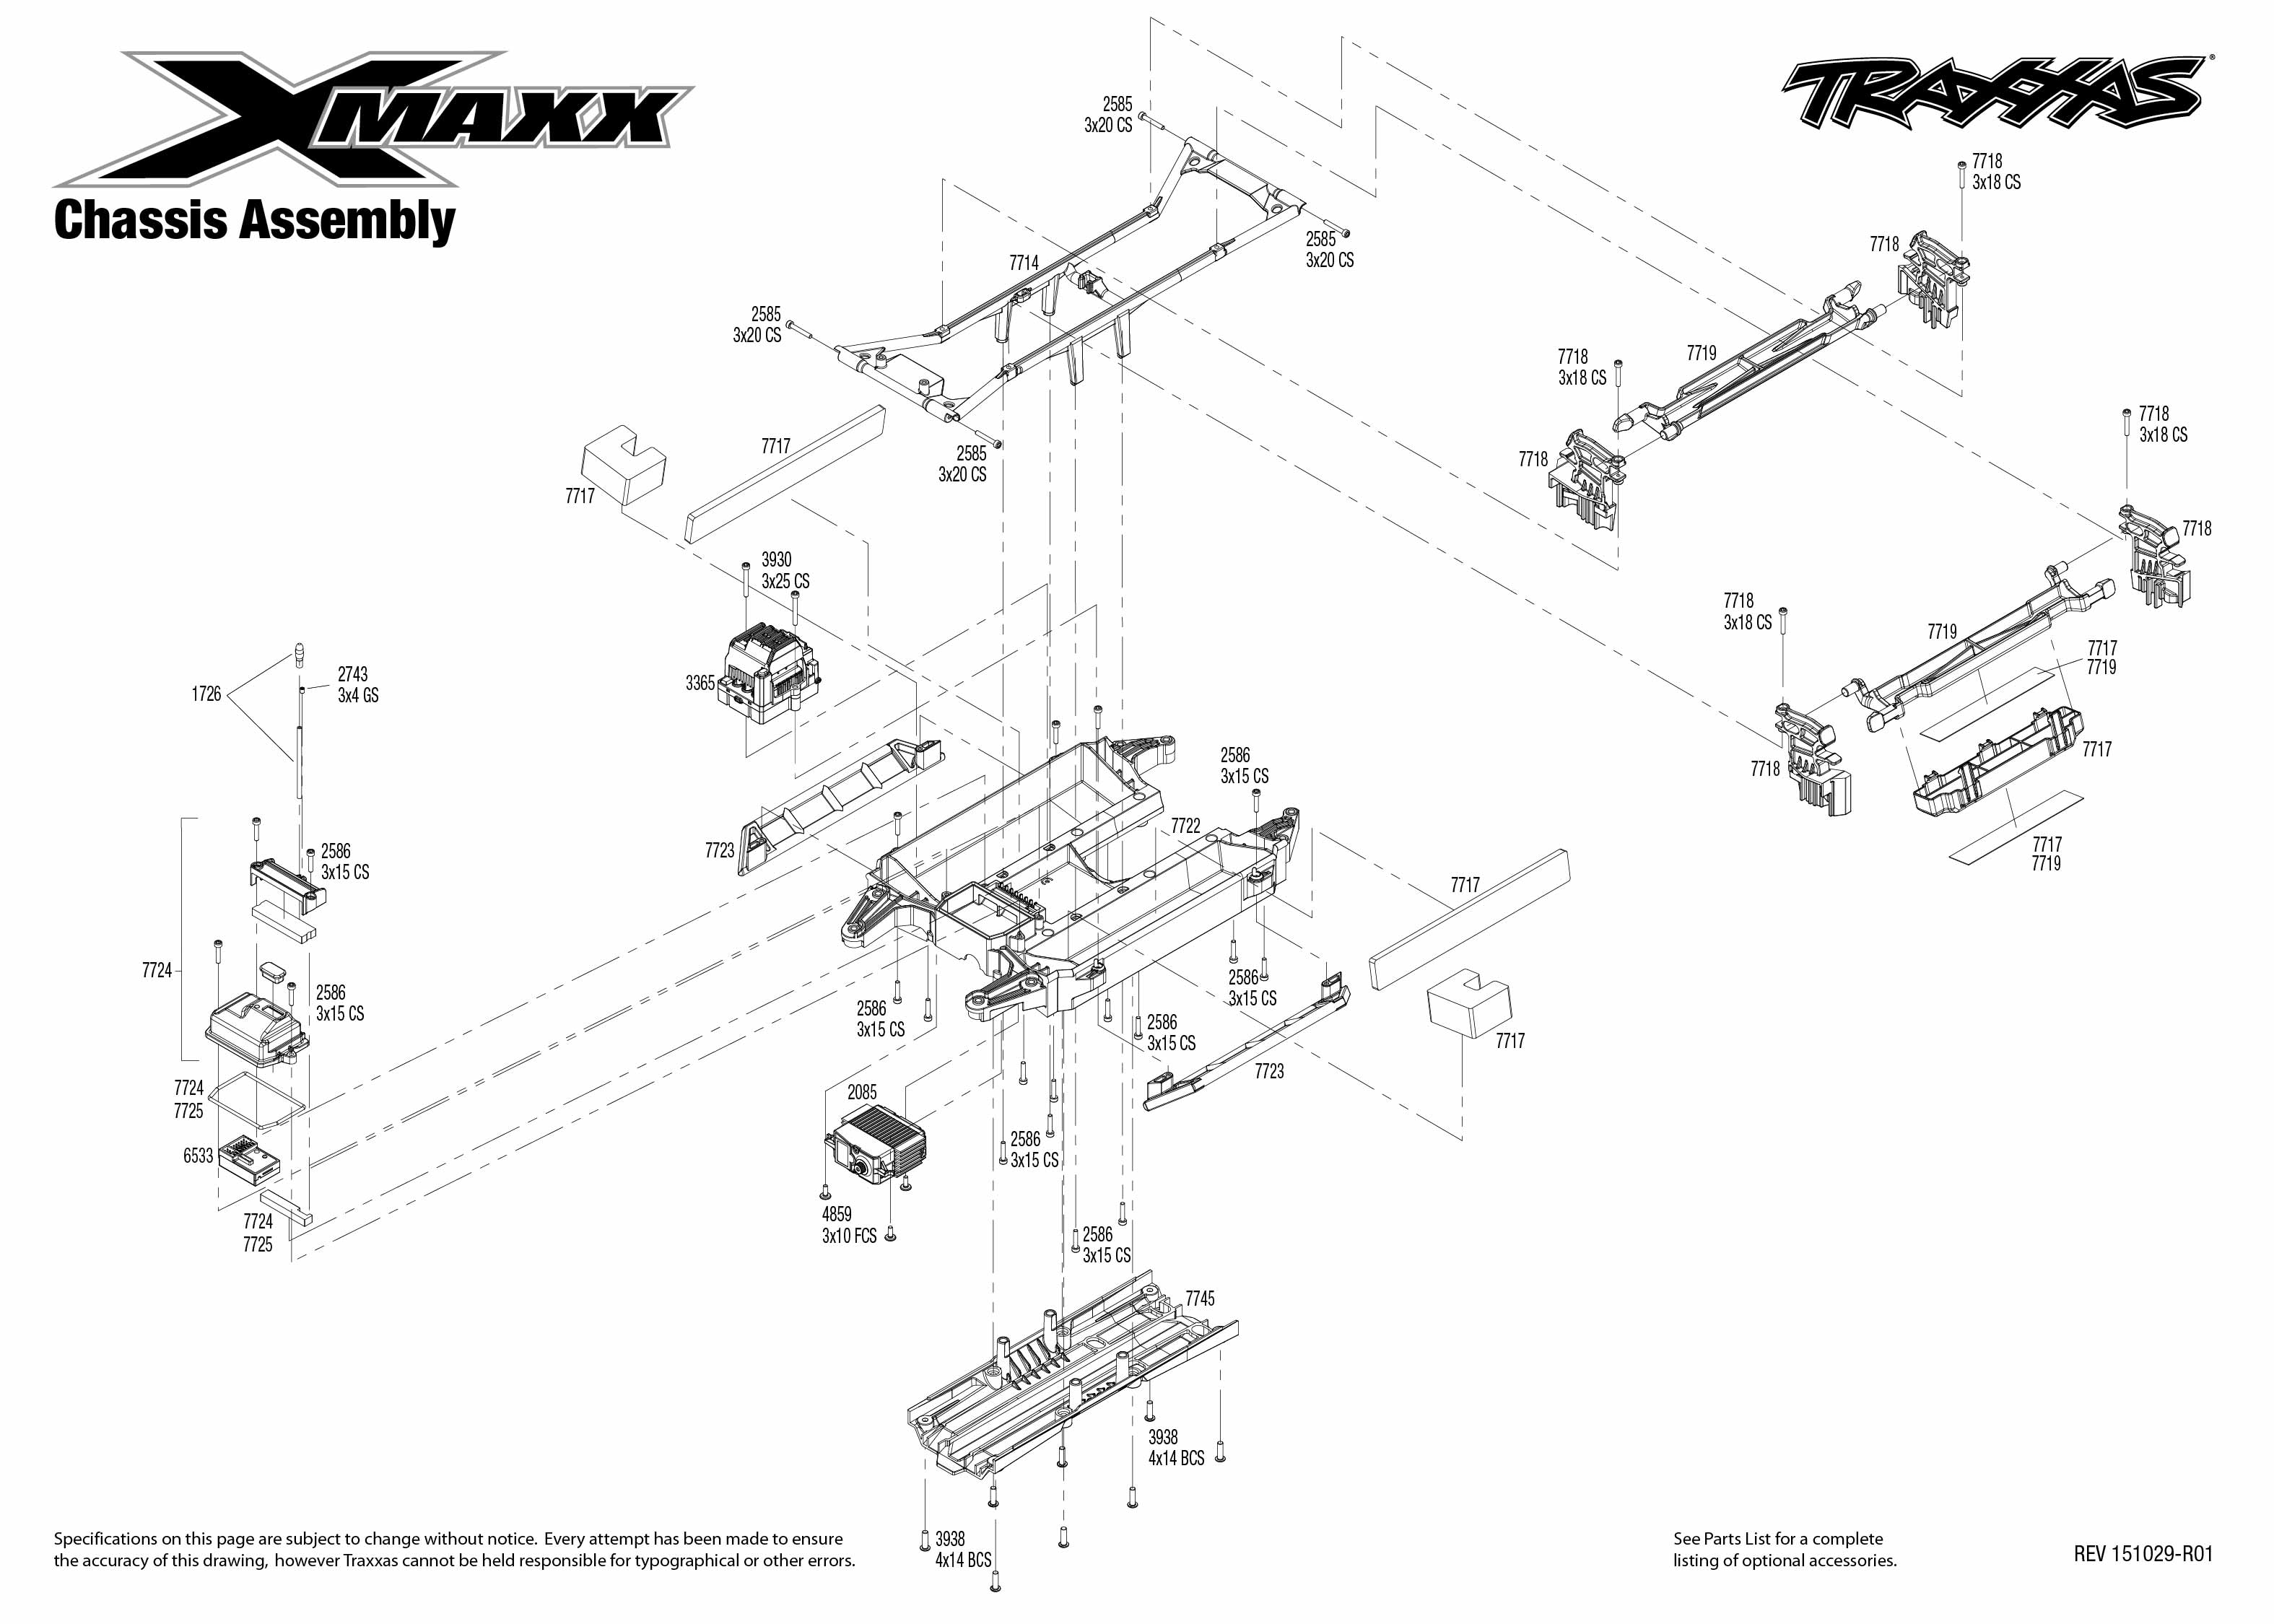 Traxxas 2 5 Engine Diagram furthermore 321594 Traxxas E Maxx Sale Trade further Watch further T Max 3 Parts together with Big Bore Blowguns. on t maxx 3 parts diagram